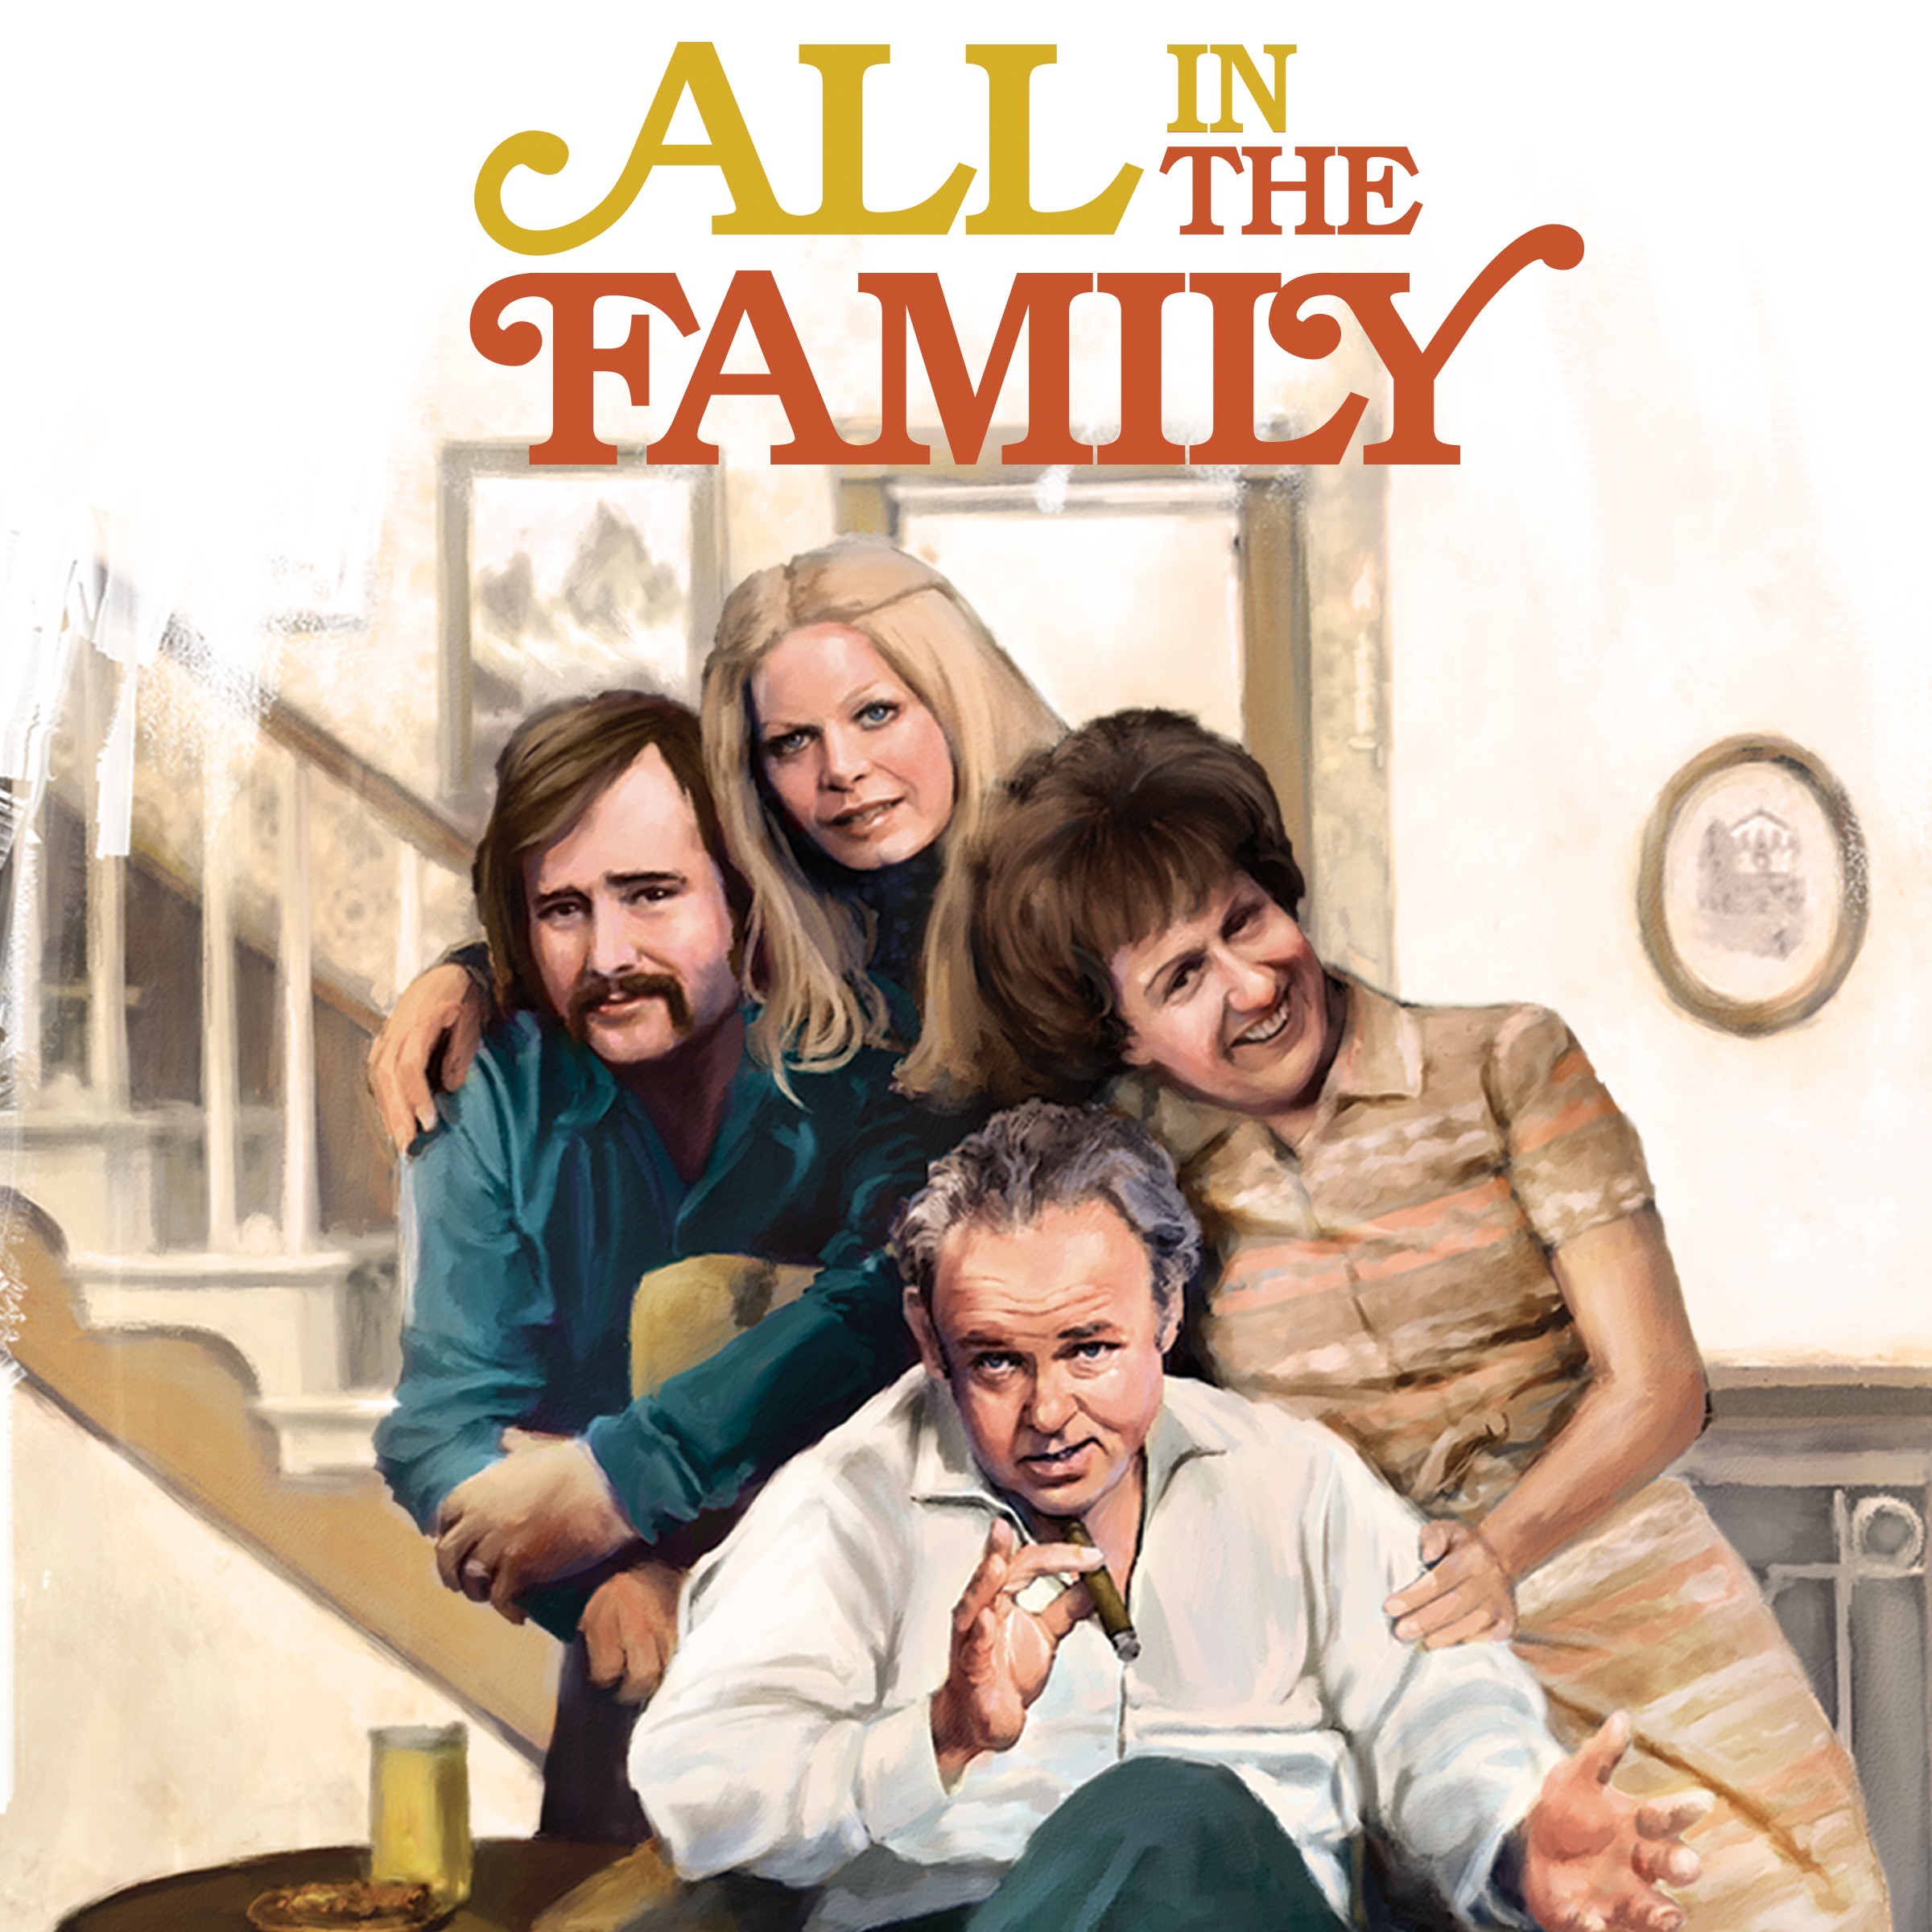 All in the Family, Season 1 on iTunes